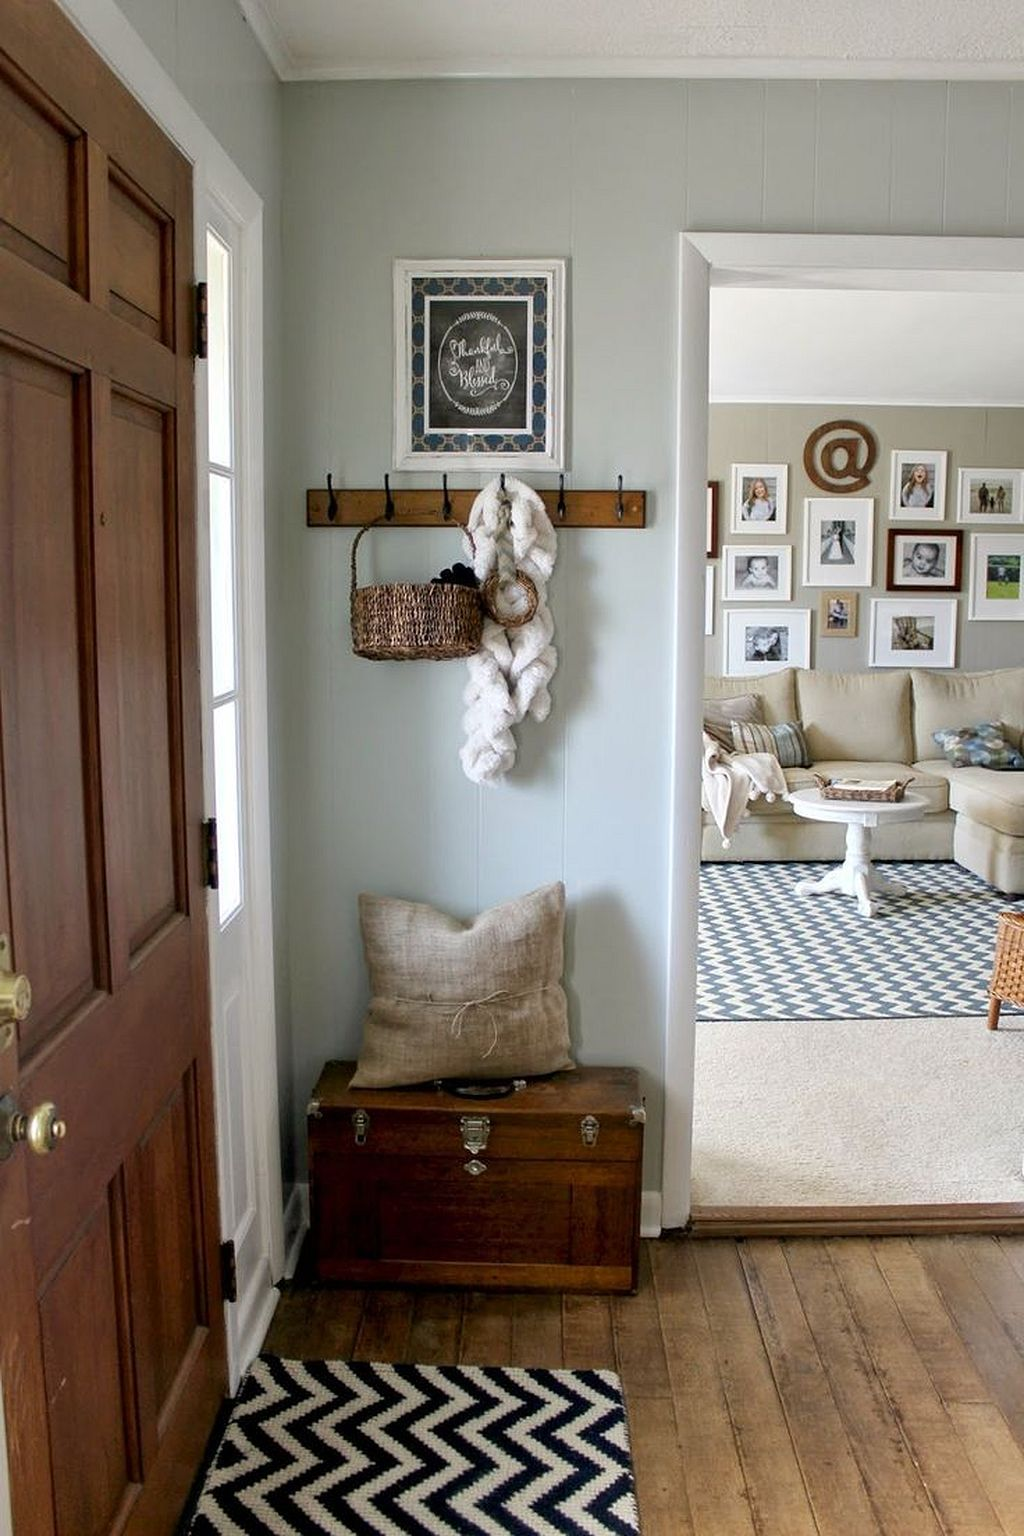 Student Living Room Decor: 50+ Awesome Small Entryway Ideas For Small Space With